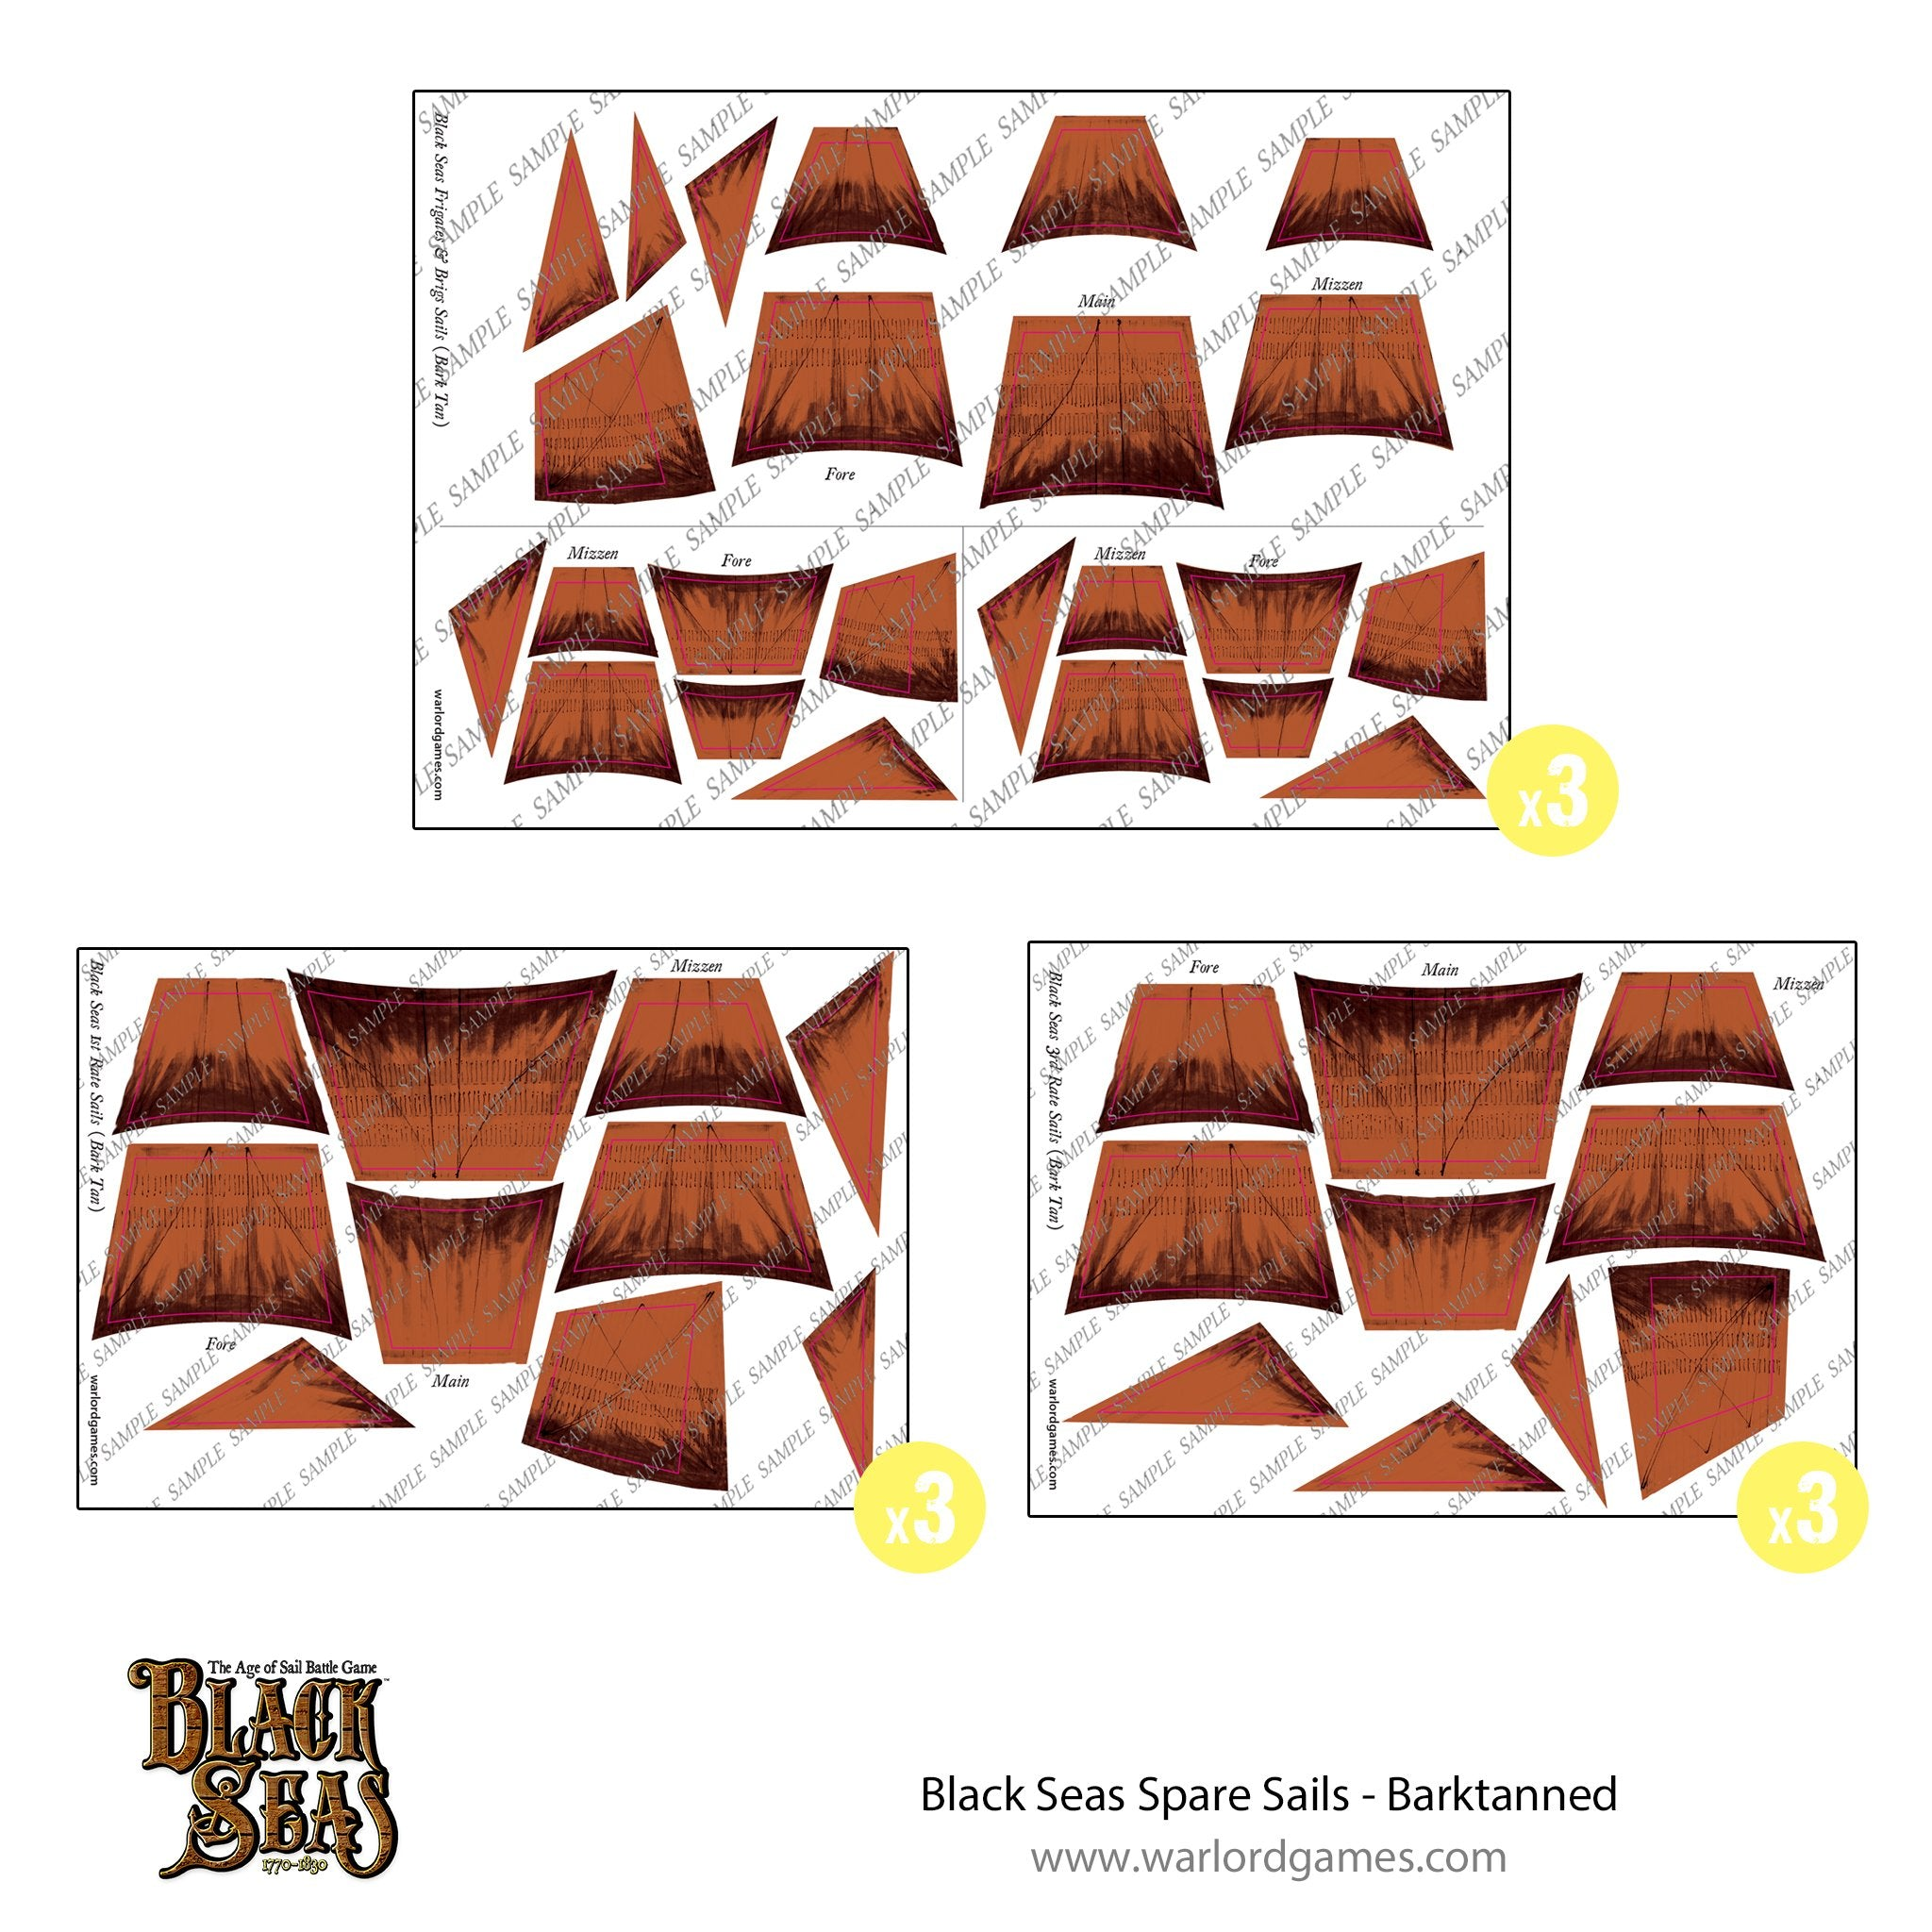 Black Seas Spare sails - barktanned